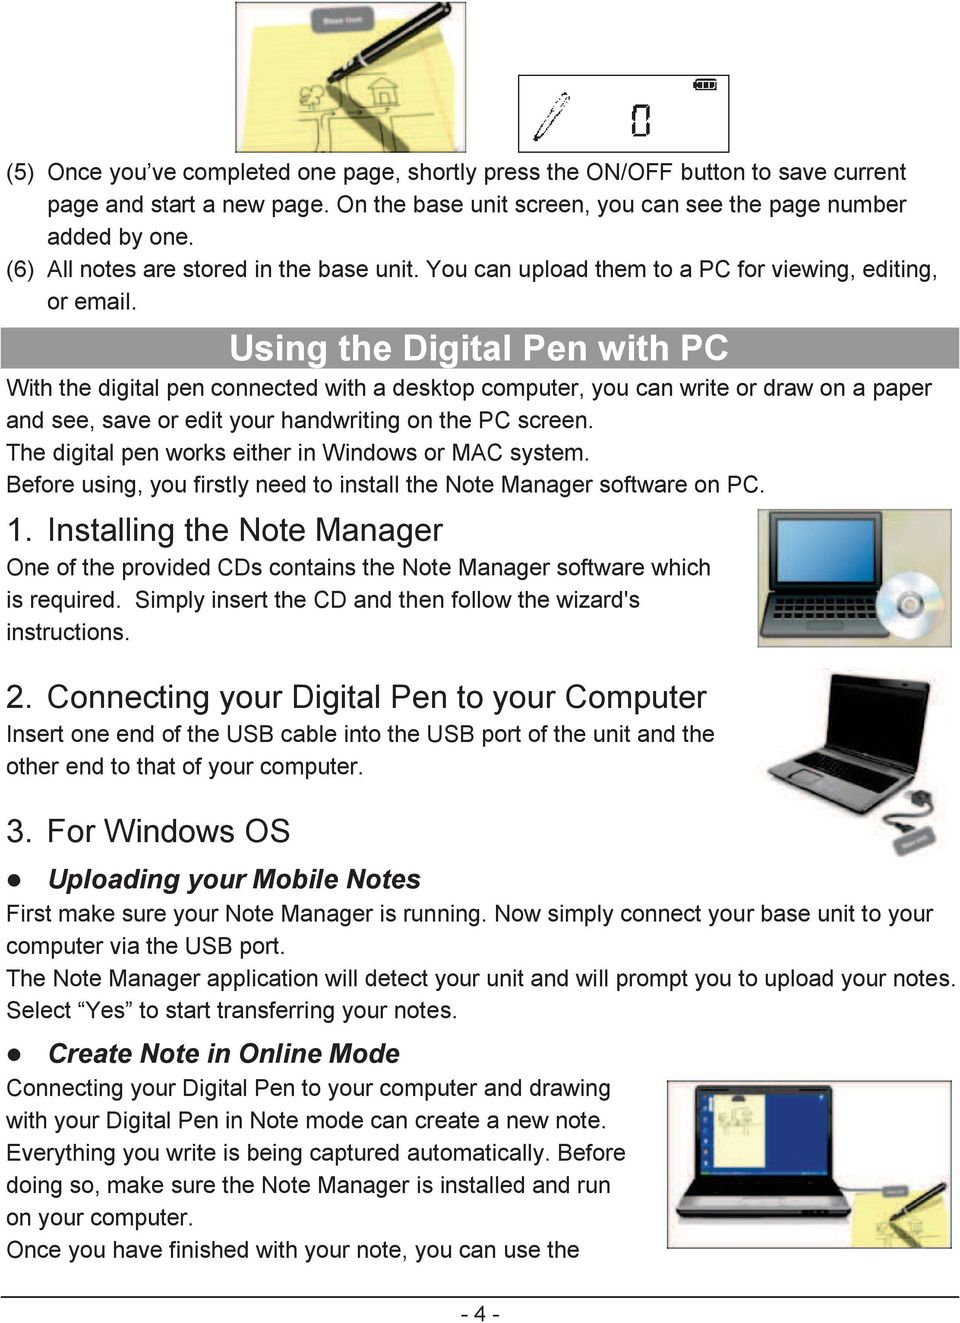 Using the Digital Pen with PC With the digital pen connected with a desktop computer, you can write or draw on a paper and see, save or edit your handwriting on the PC screen.